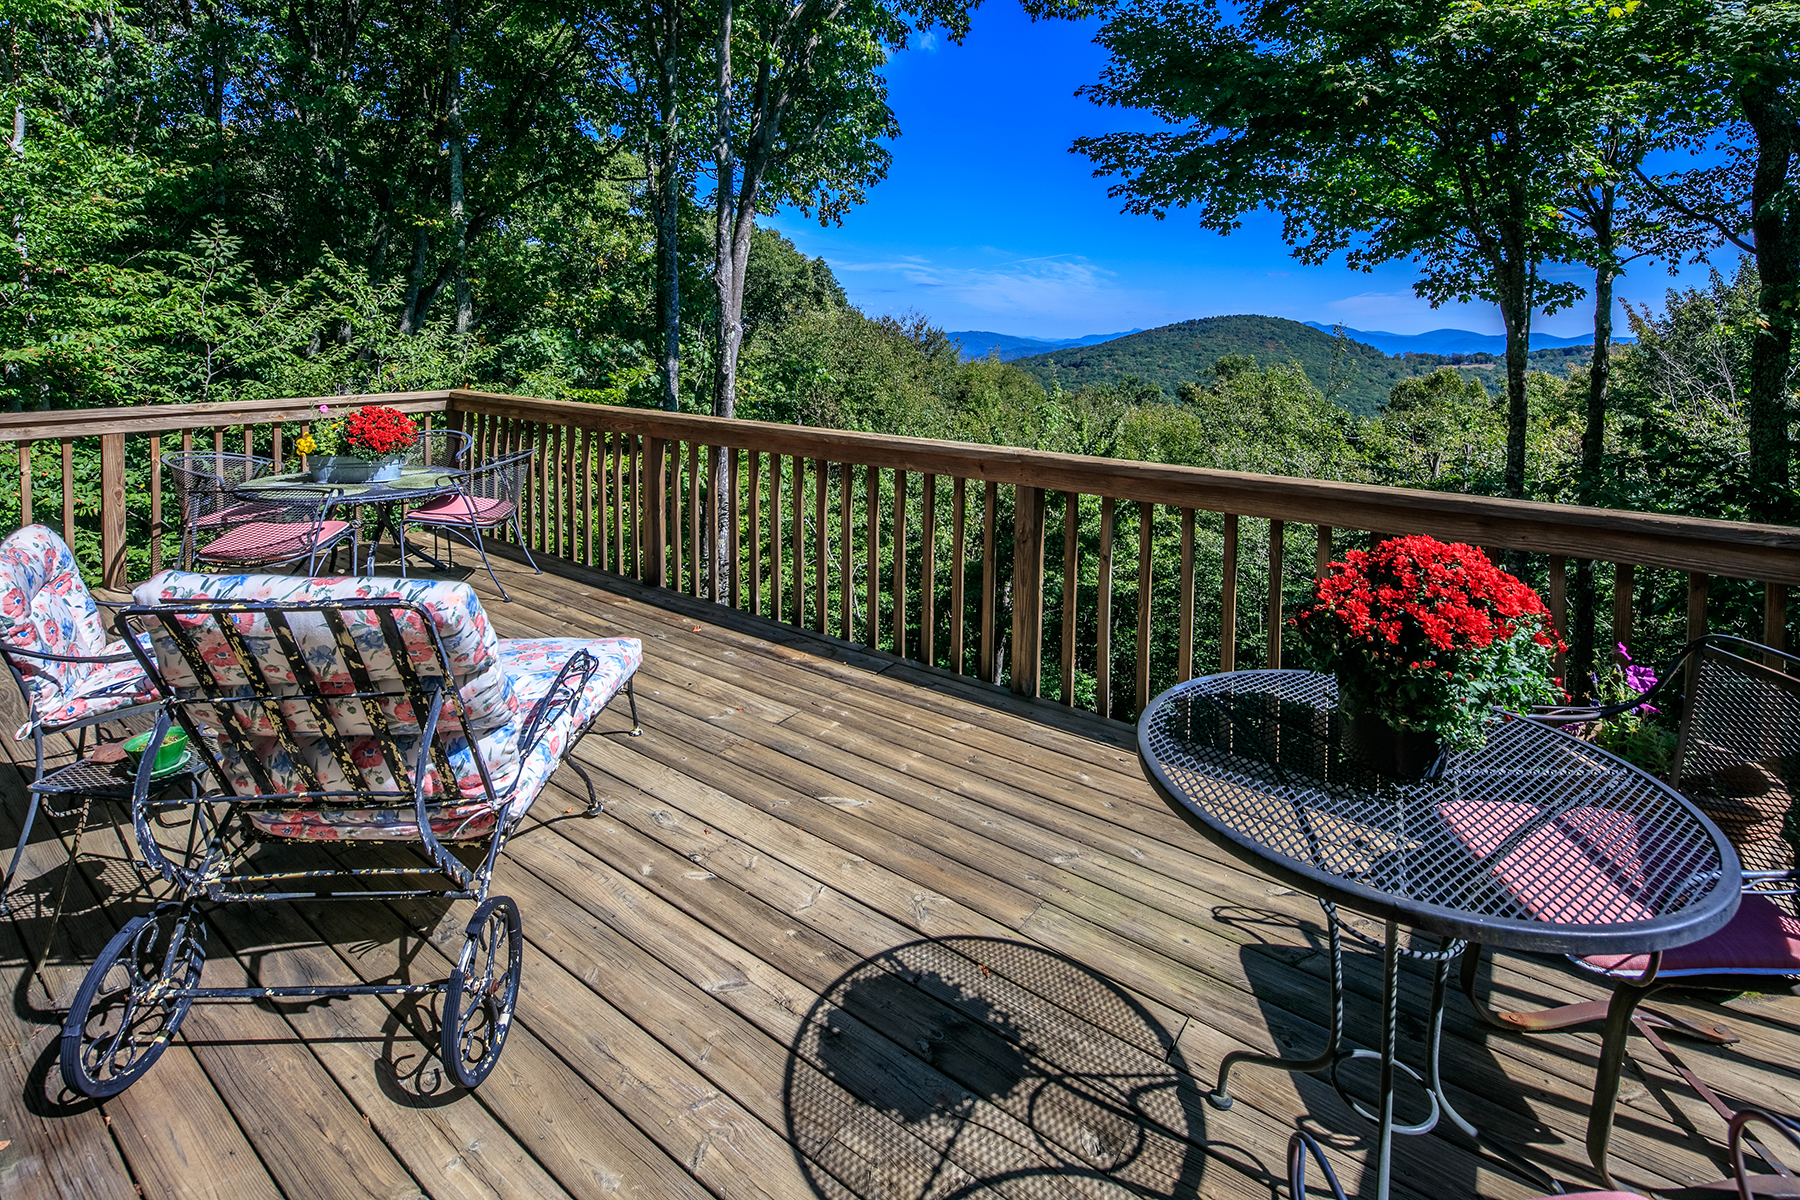 Single Family Homes for Sale at 304 Lakeledge Rd Beech Mountain, North Carolina 28604 United States